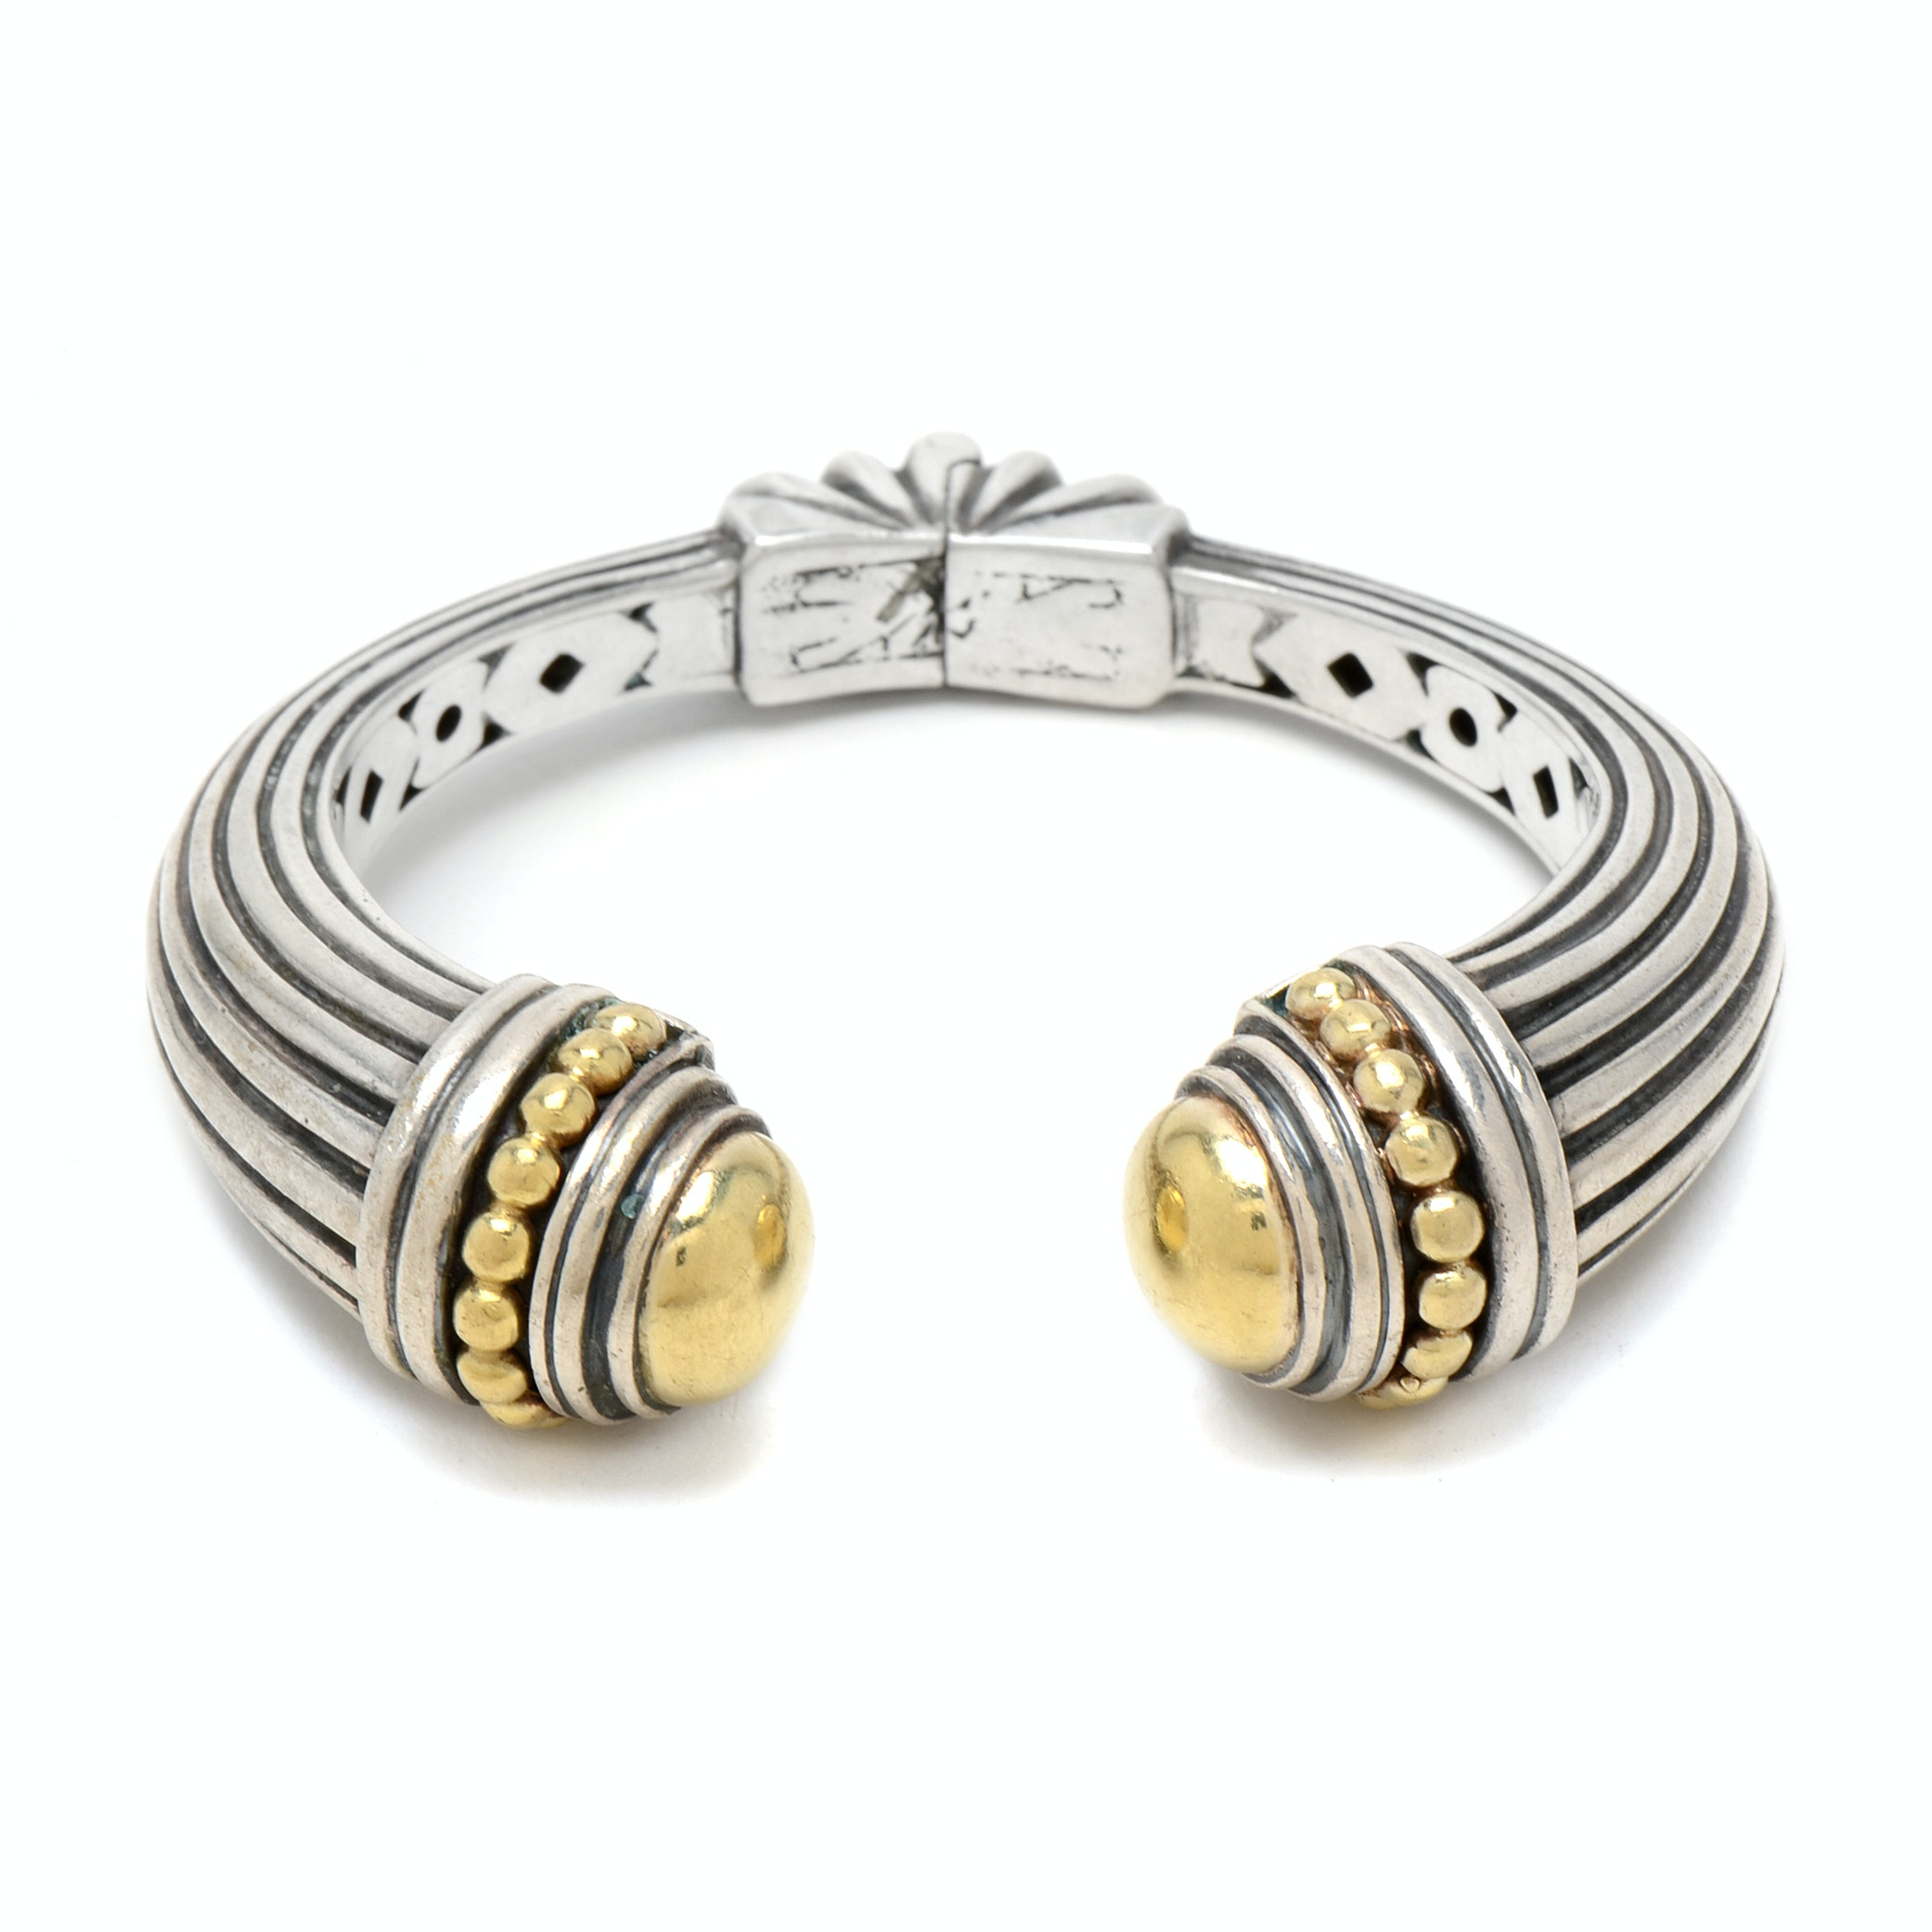 Caviar Sterling Silver and 18K Yellow Gold Cuff Bracelet